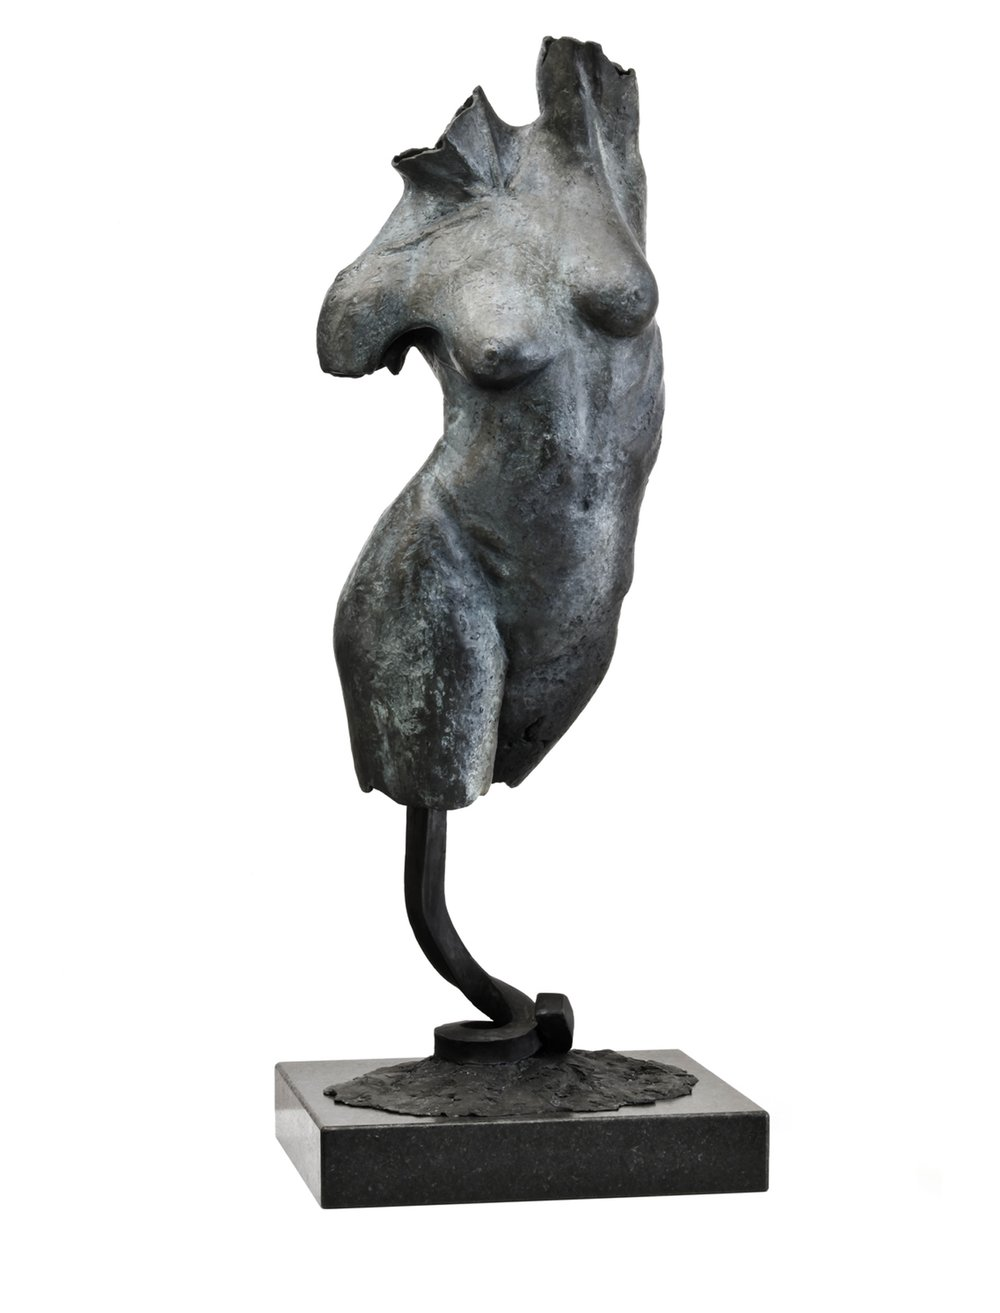 Persephone #1 , 2012, Bronze, Limited Edition of 5, 30 x 12 x 10 inches